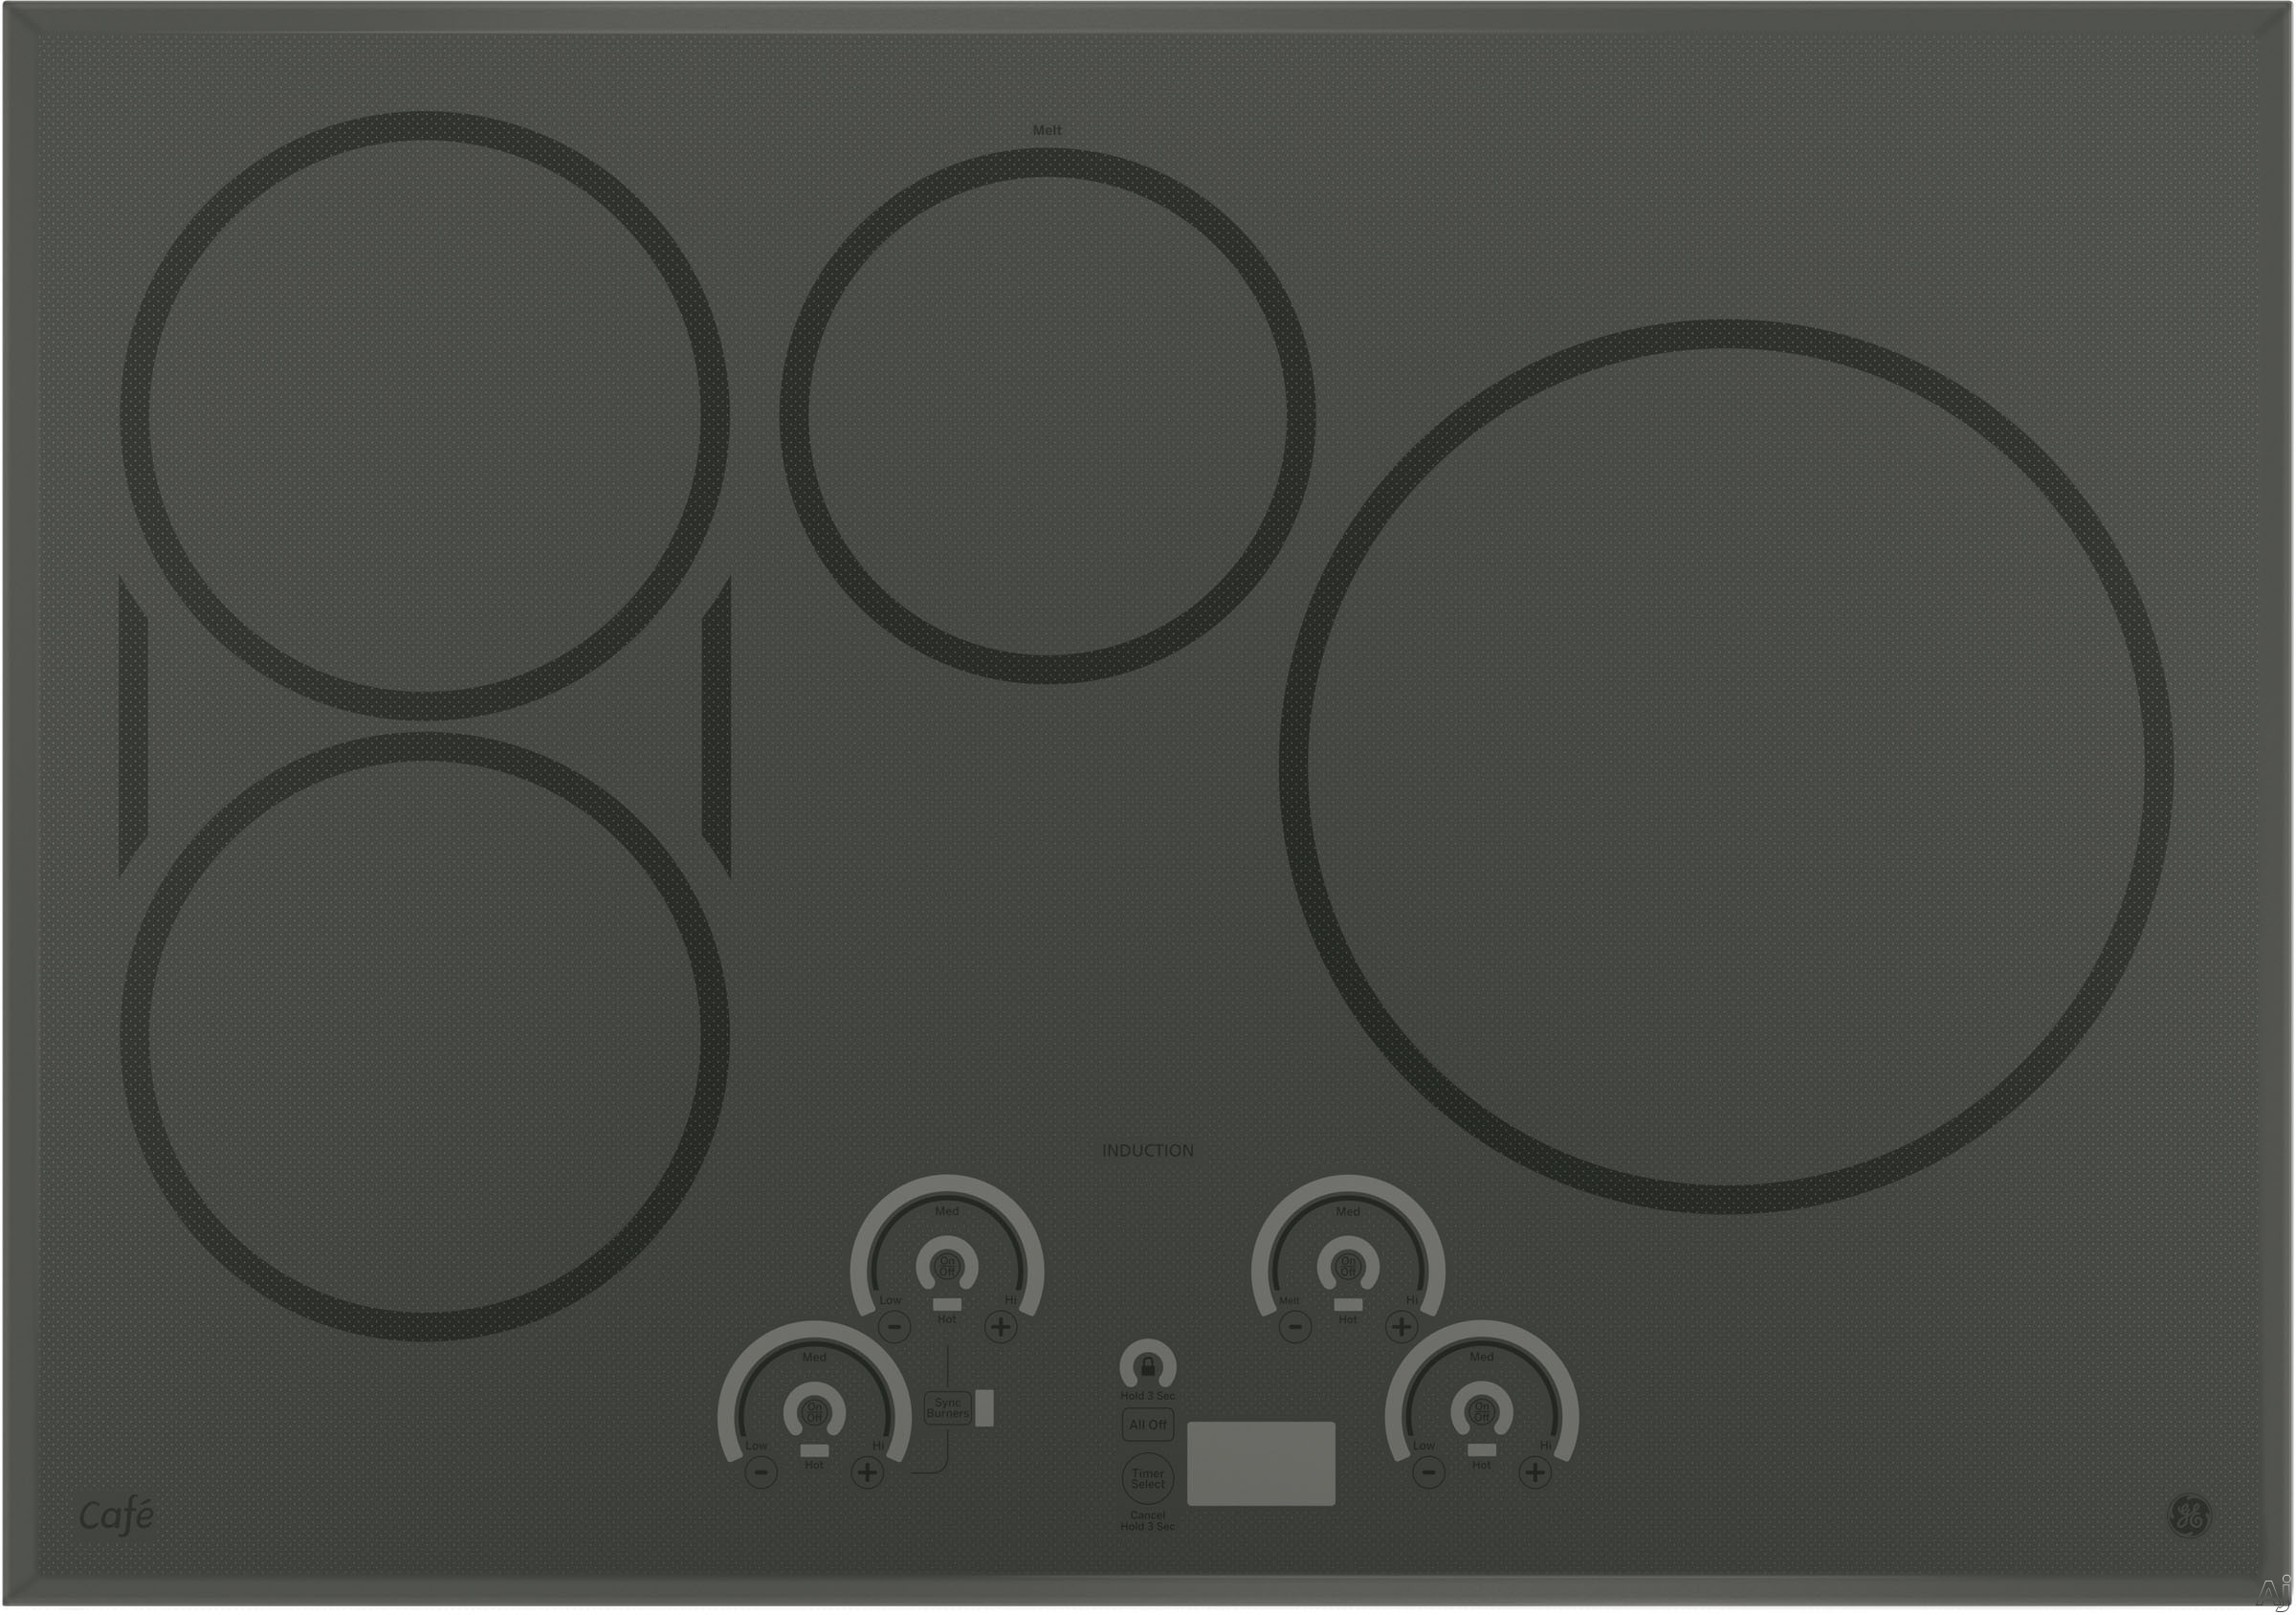 GE Cafe Series CHP9530SJSS 30 Inch Induction Cooktop with 4 Induction Elements, SyncBurners, Griddle, Blue/Red Touch Sensor Controls, Control Lock, All-Off Feature, Hot Surface Indicator Light, GE Fit